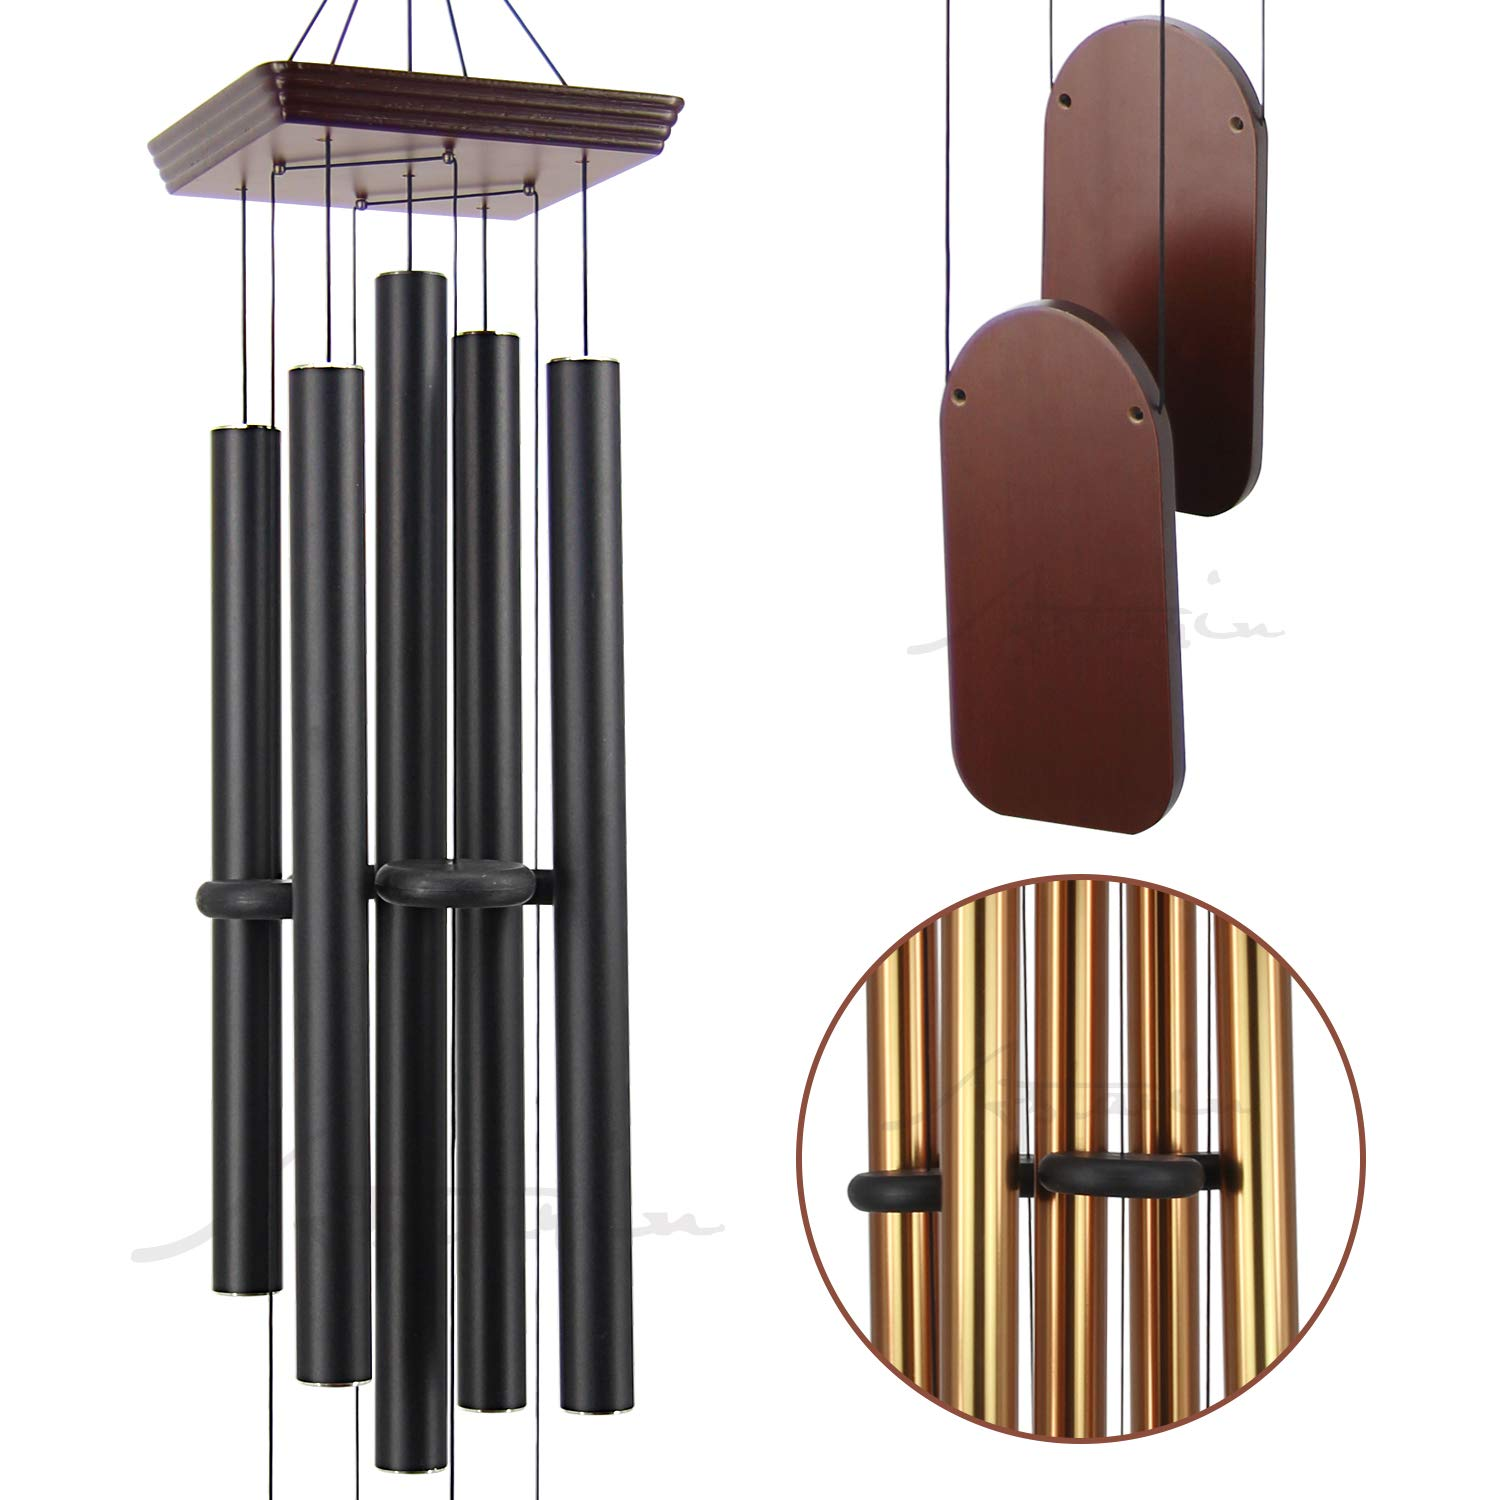 Large Wind Chimes Outdoor Deep Tone, 48 Inch Amazing Grace Wind Chime Sympathy with 5 Big Aluminum Tubes Tuned Soothing Melody,Memorial Wind Chimes Unique for Patio, Garden, Yard, Porch Decor